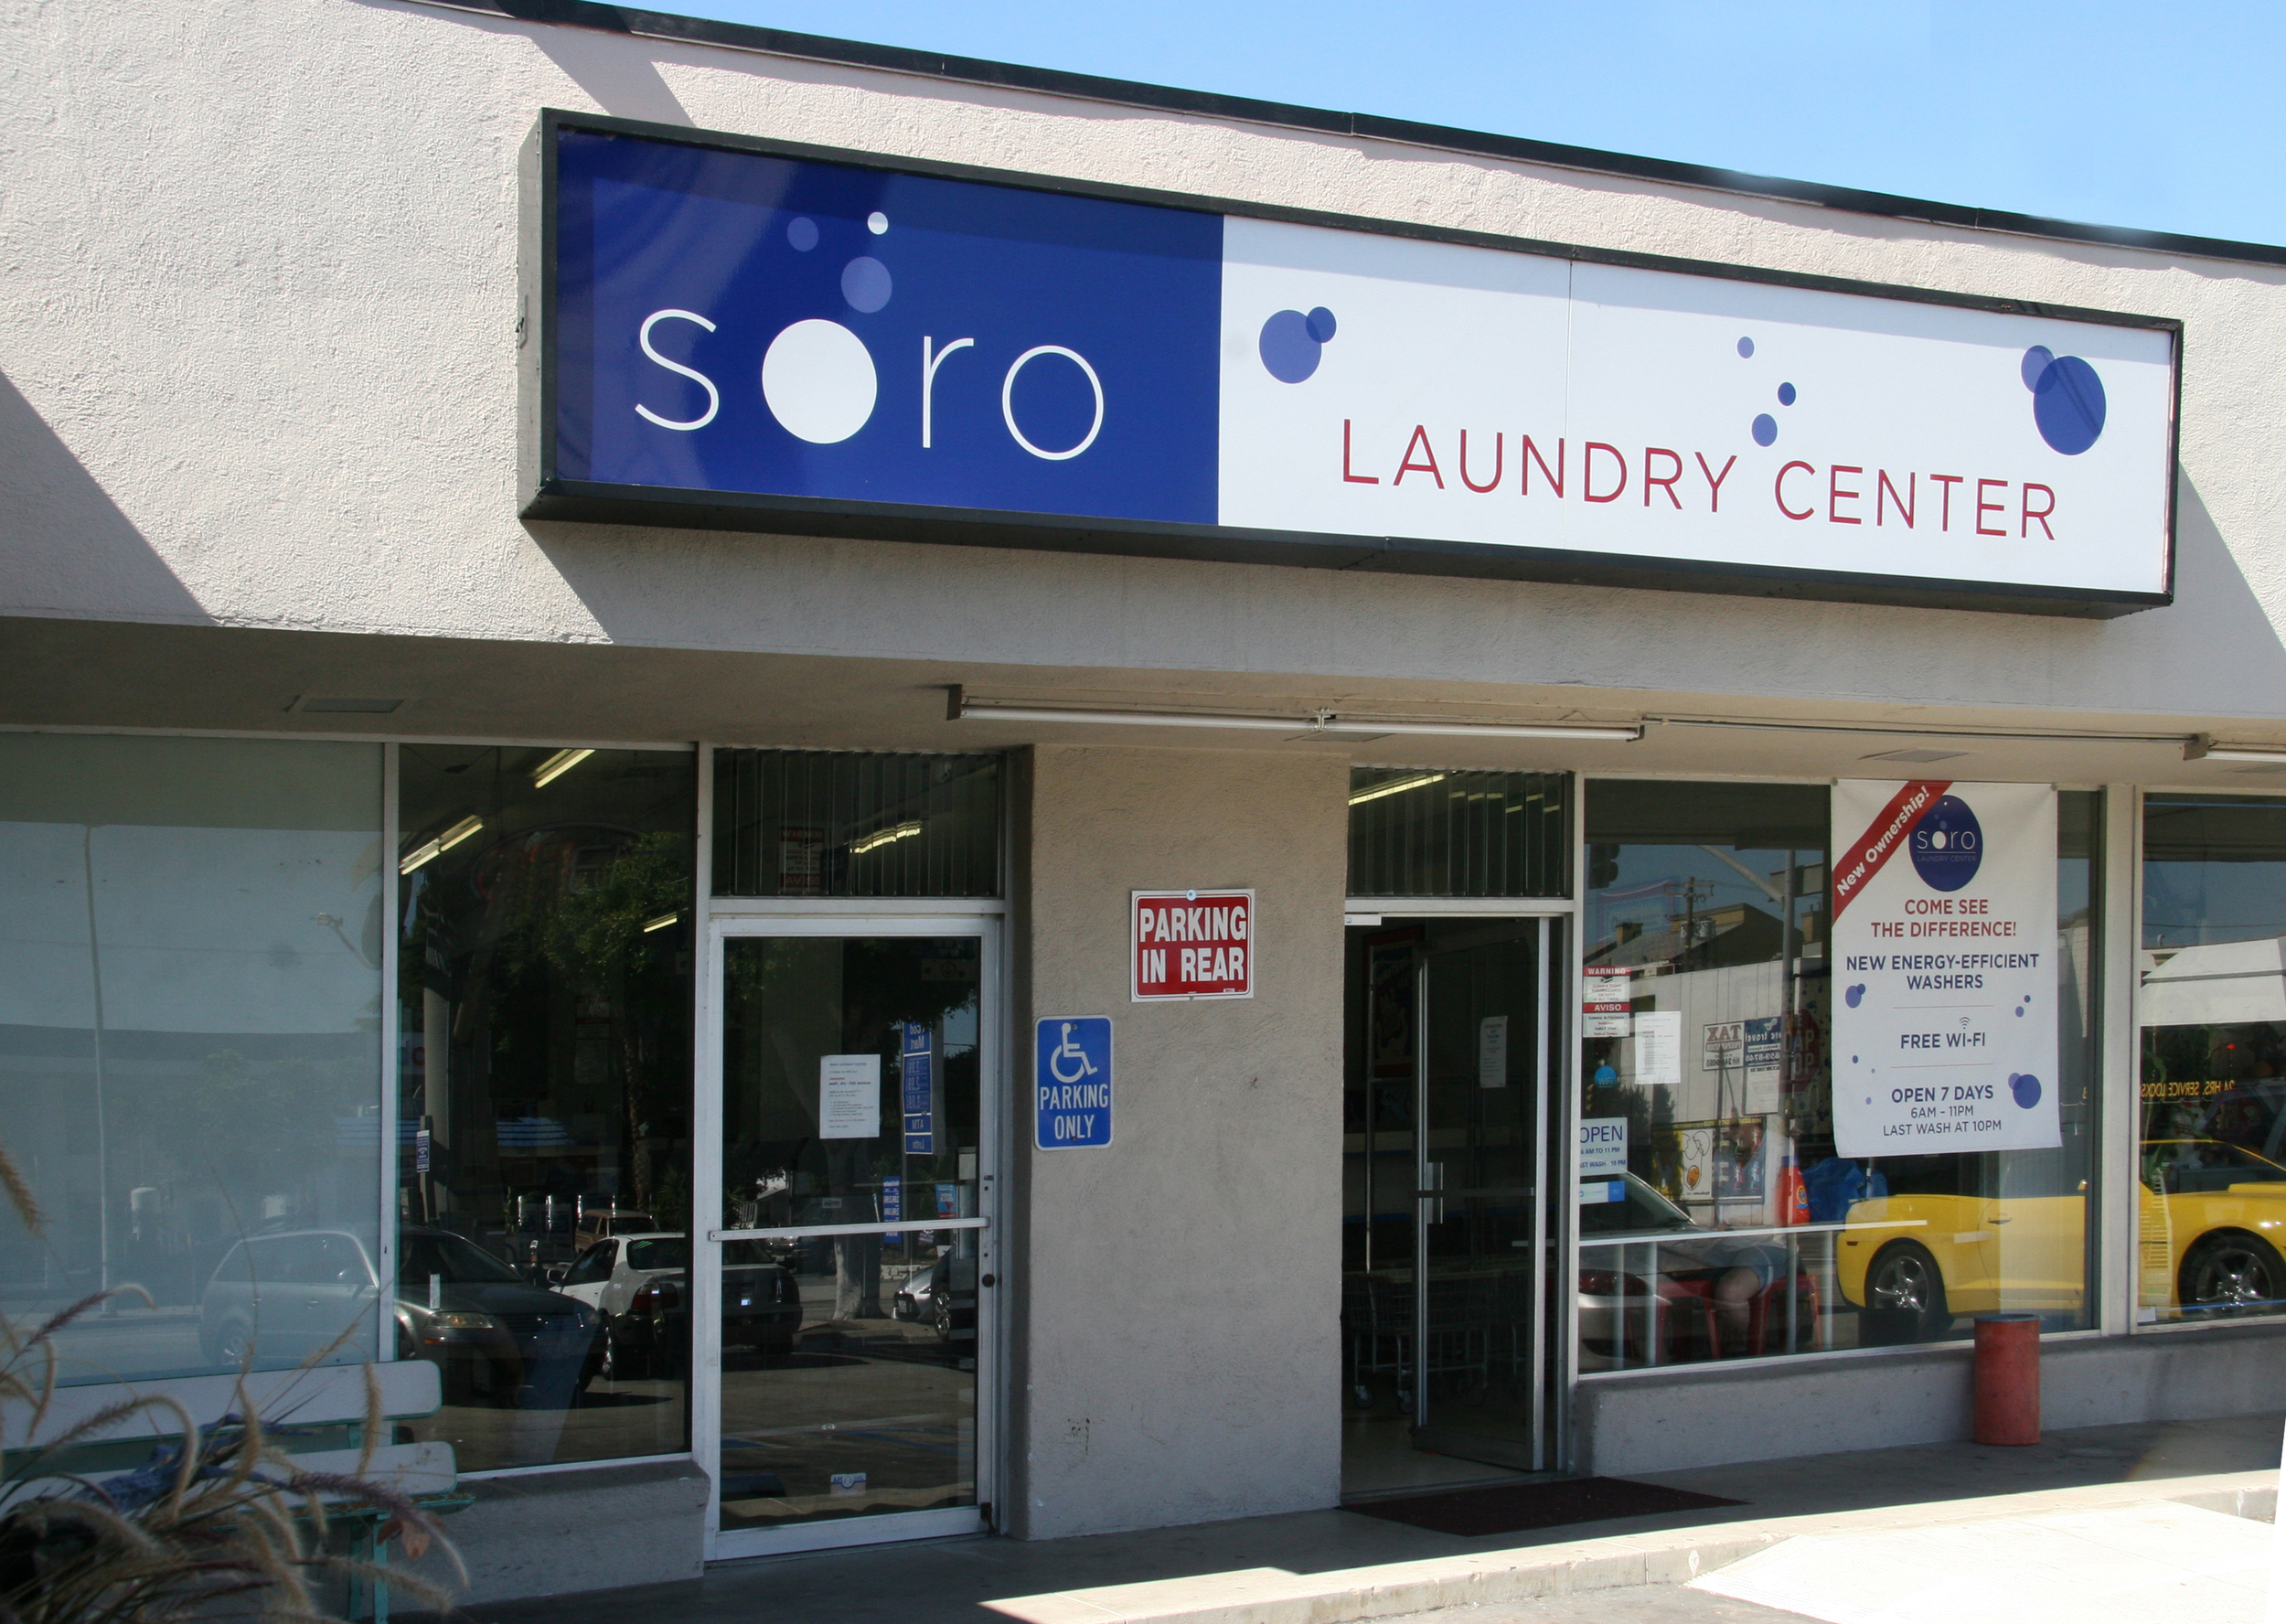 Come visit us at Soro Laundry Center